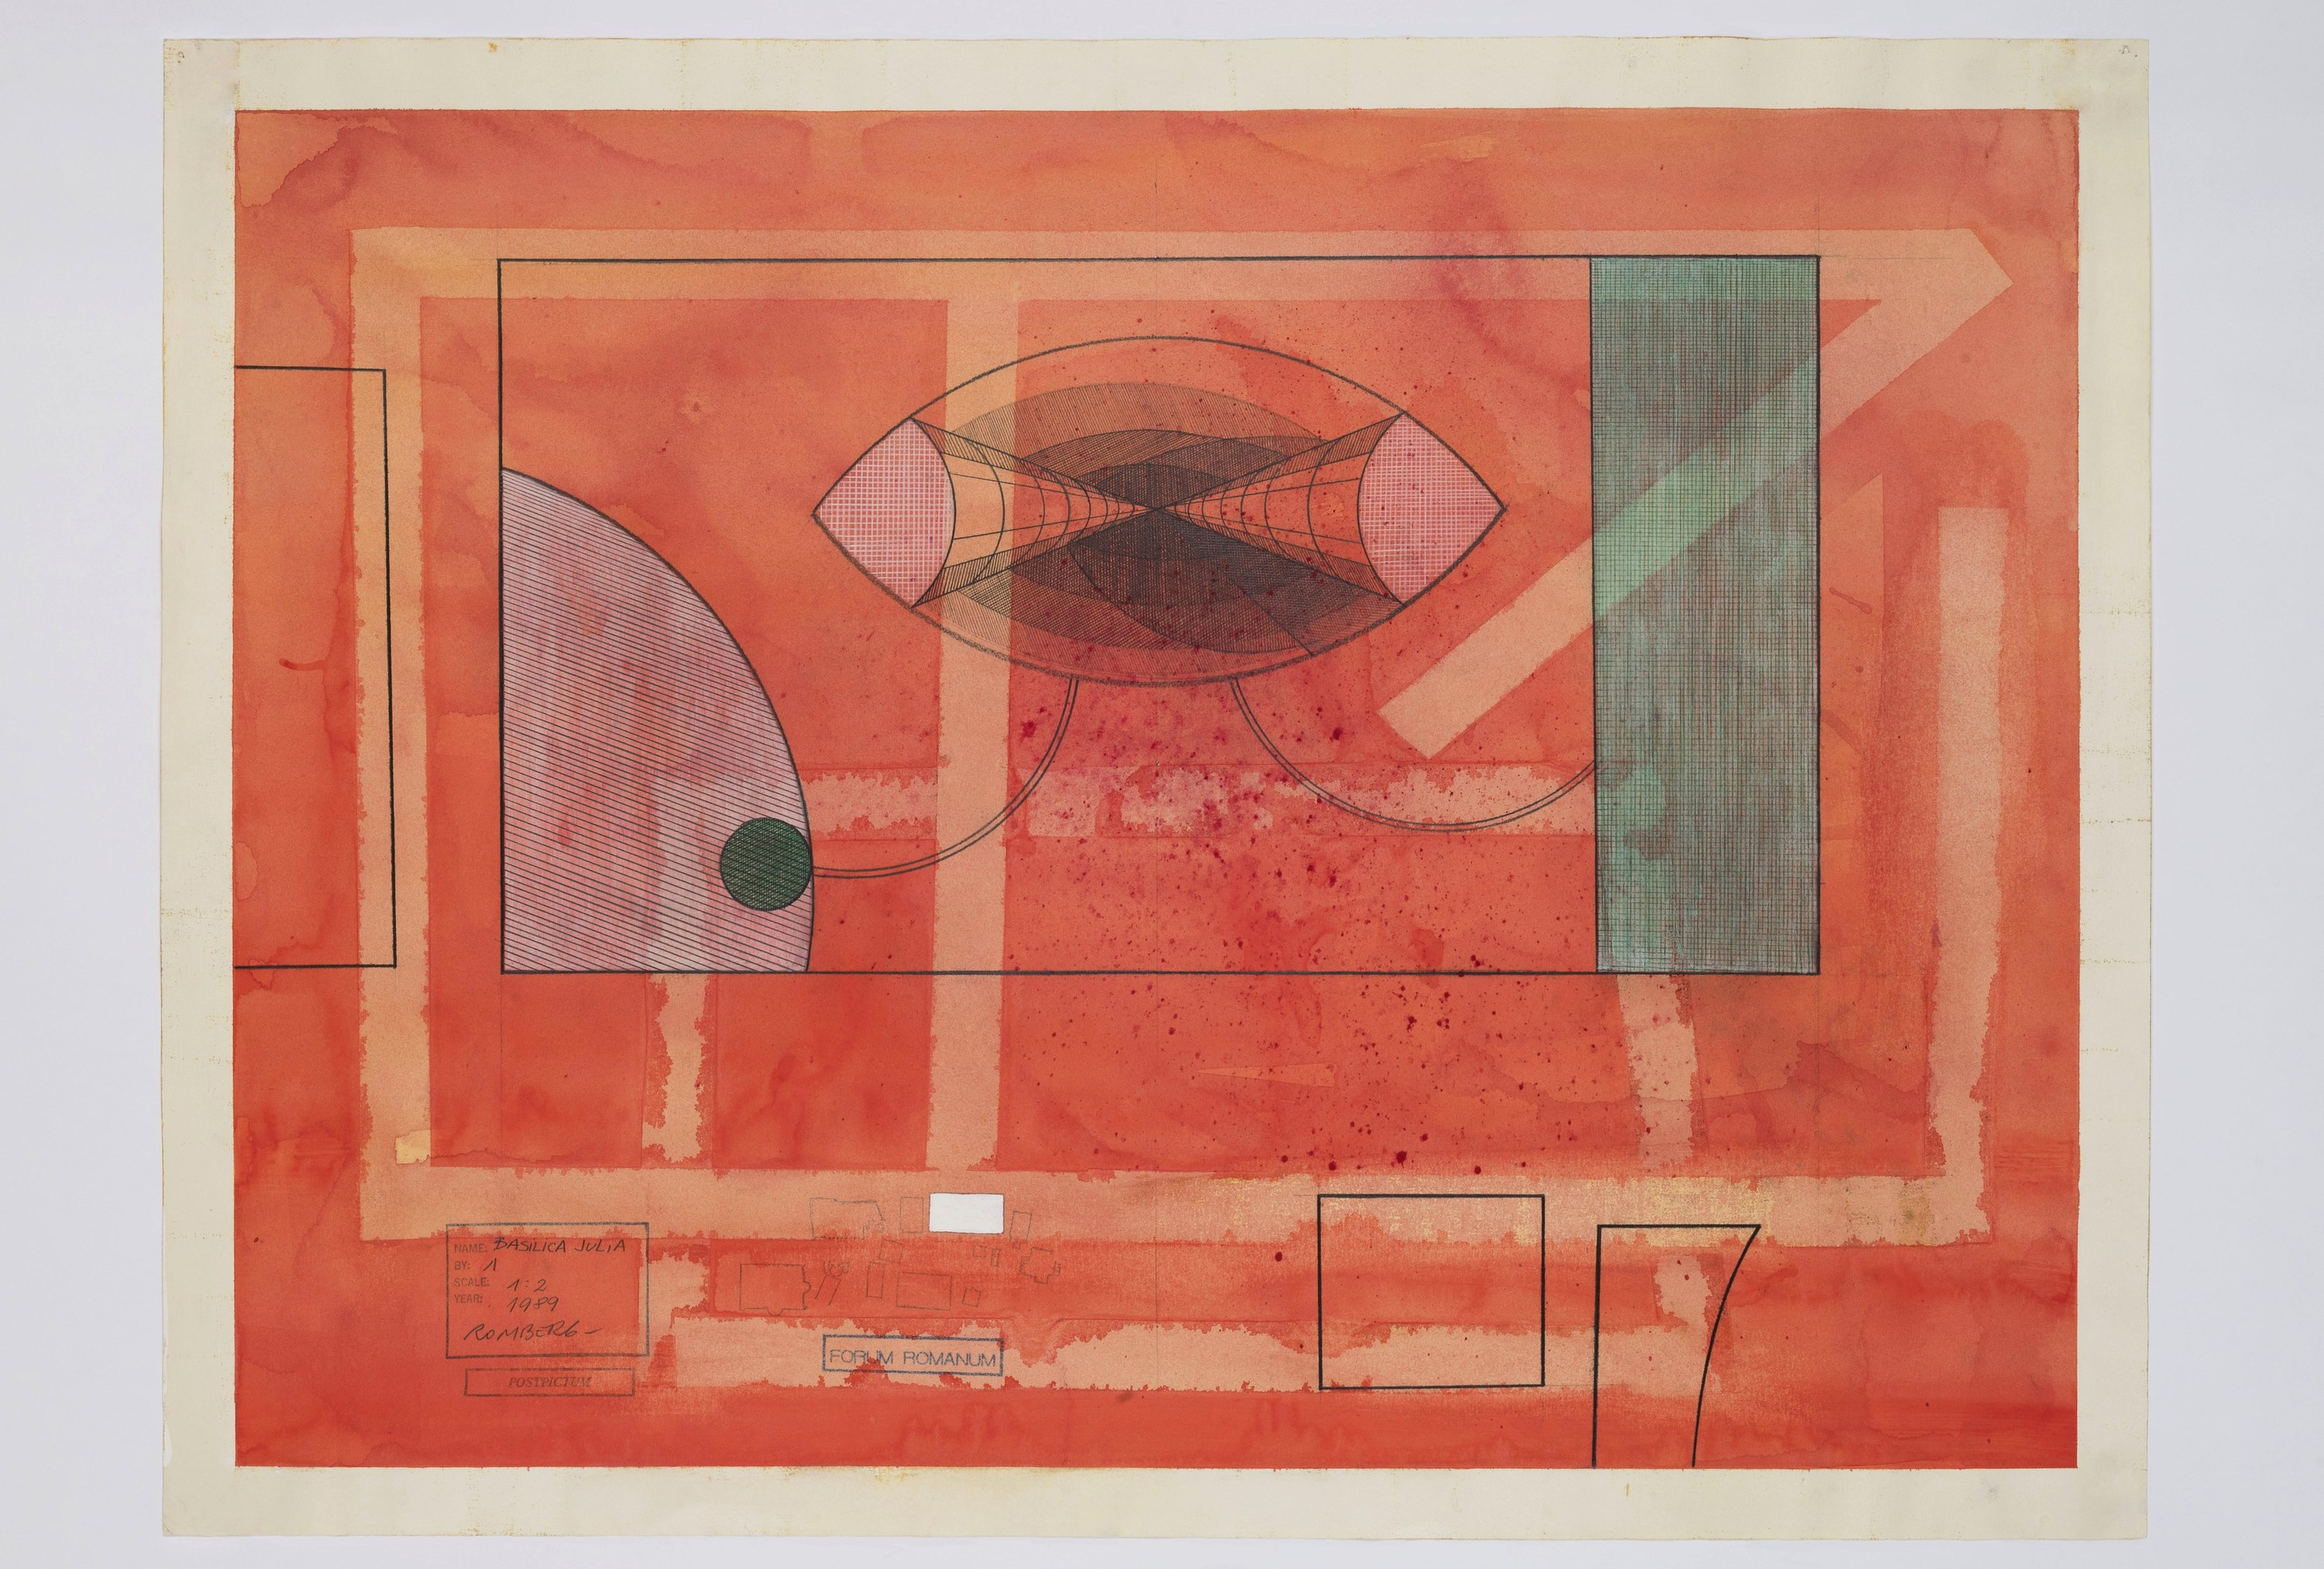 Osvaldo Romberg: a look into one of Israel's most influential artists